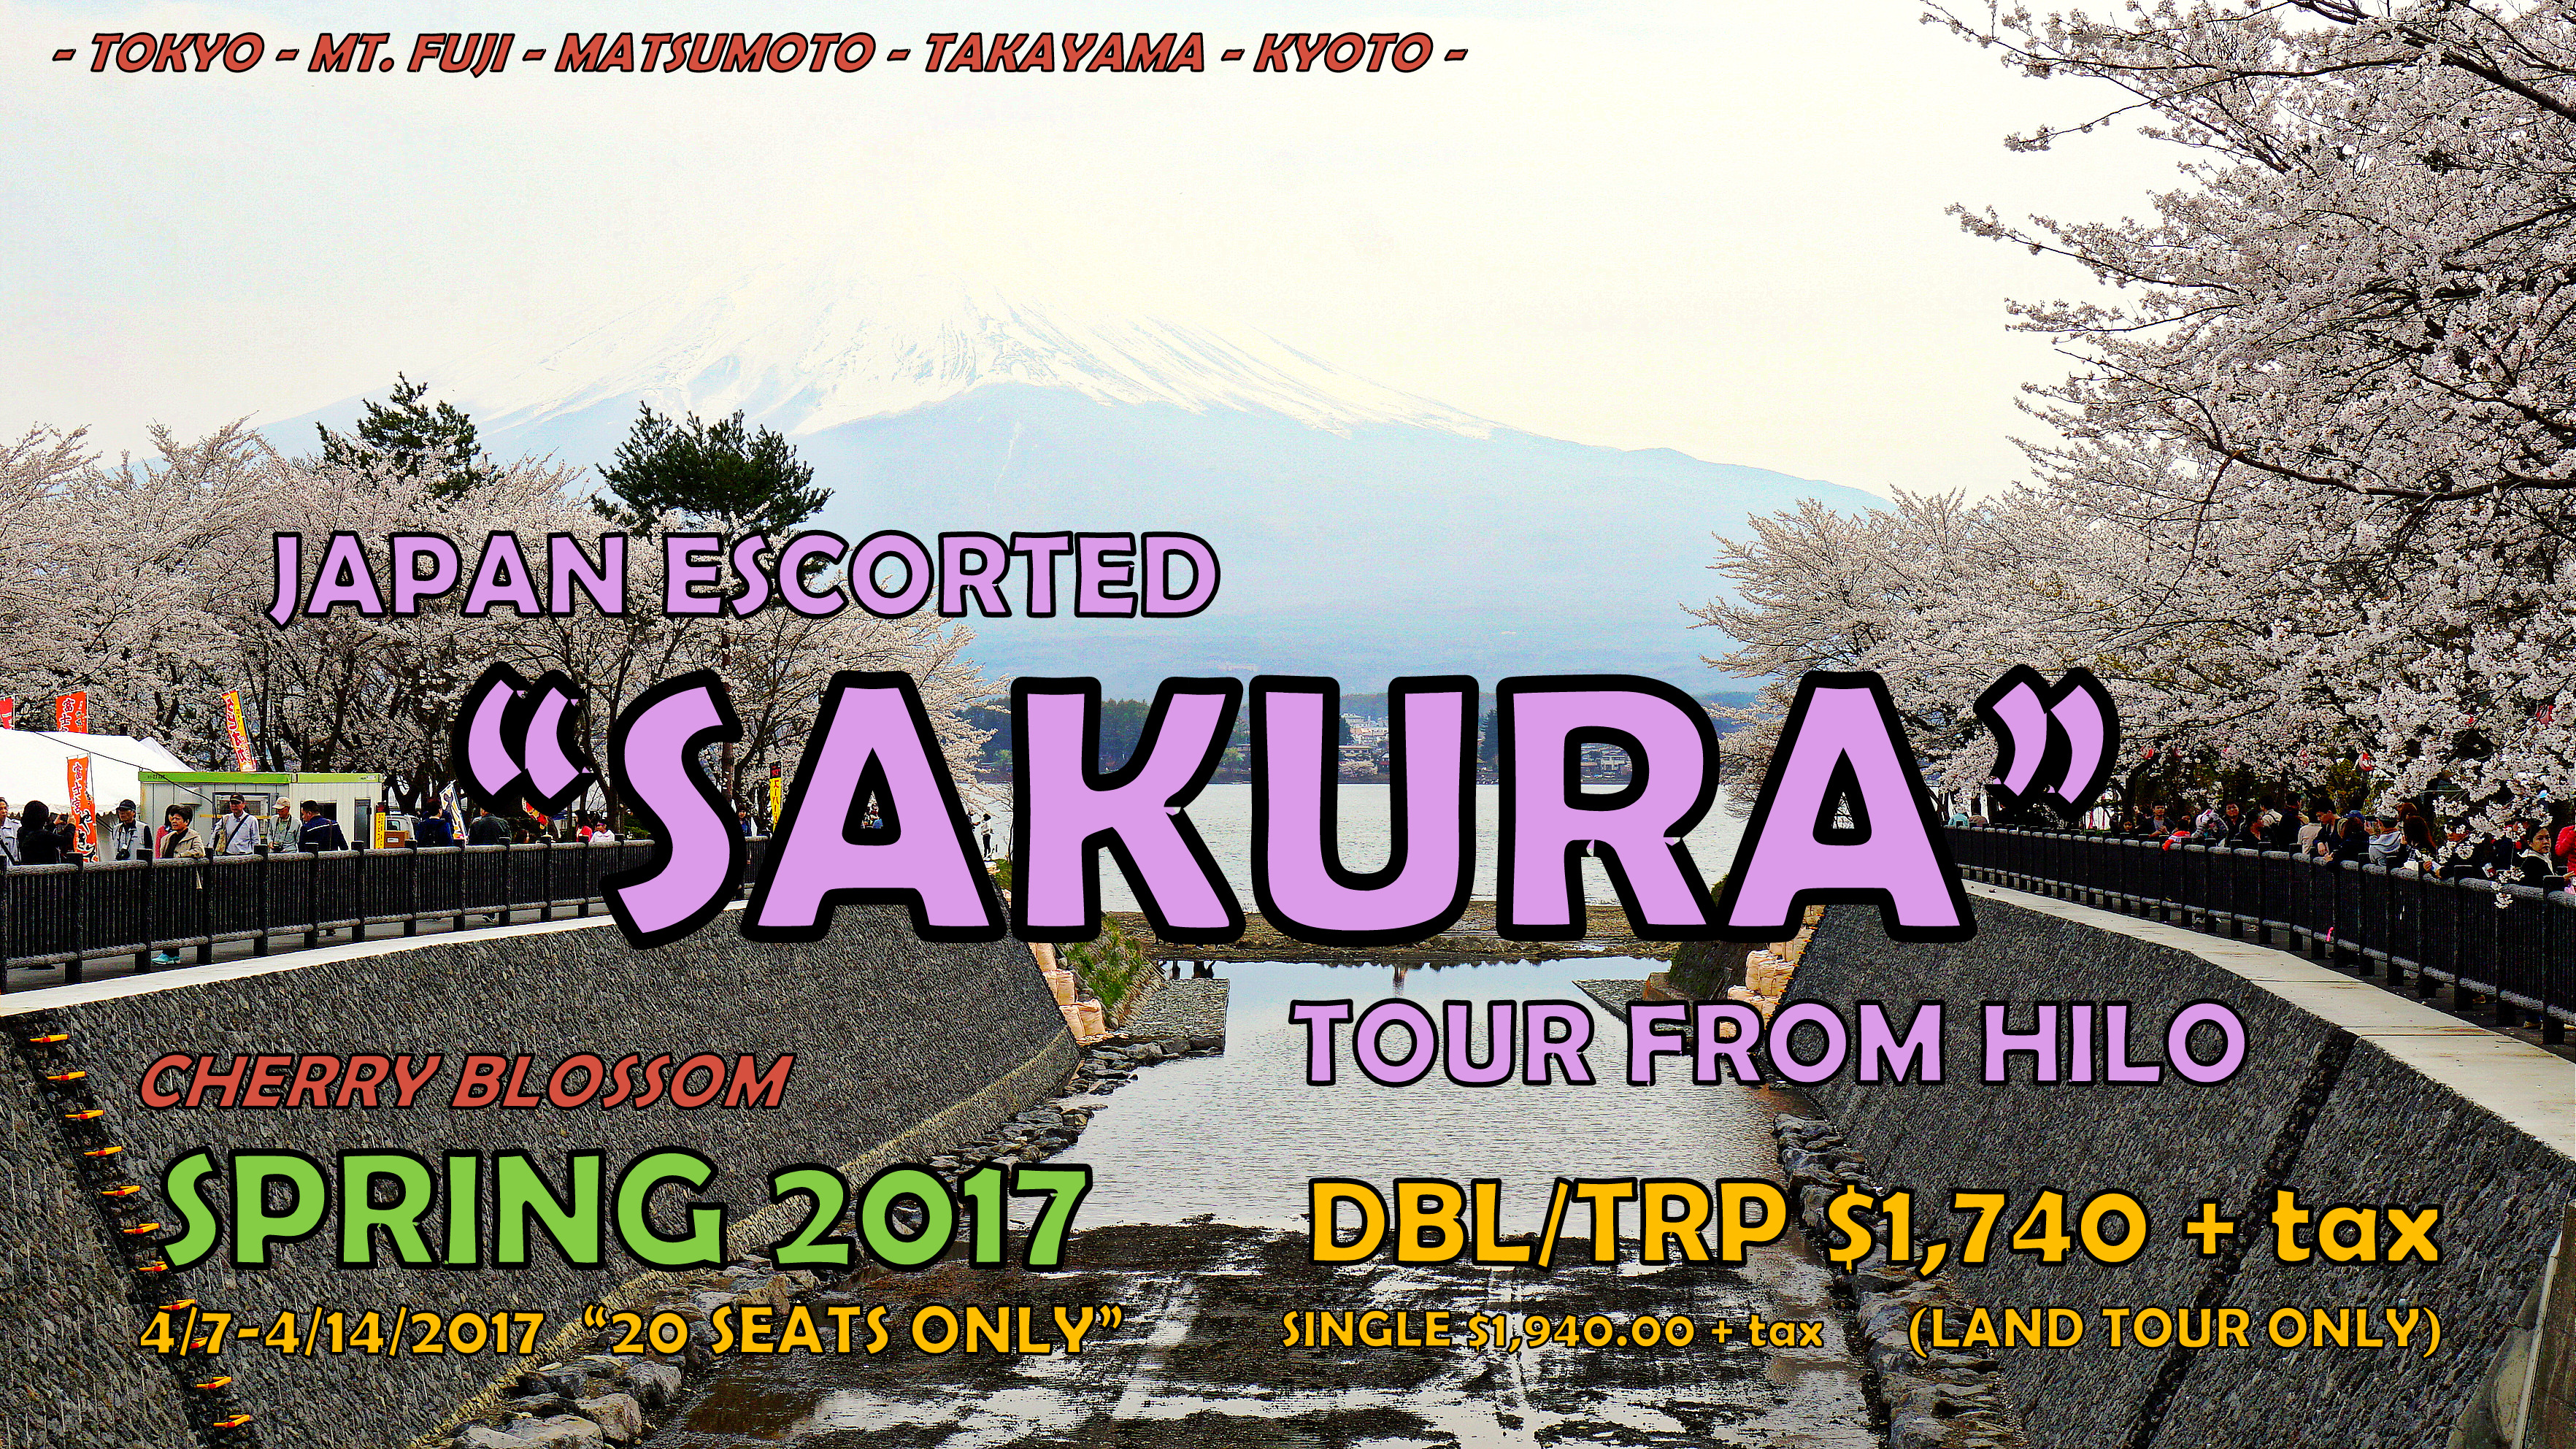 Spring 2017 - SAKURA Viewing with Spring Food & Local Nama Sake (Tour Dates: 4/5/2017 - 4/14/2017)